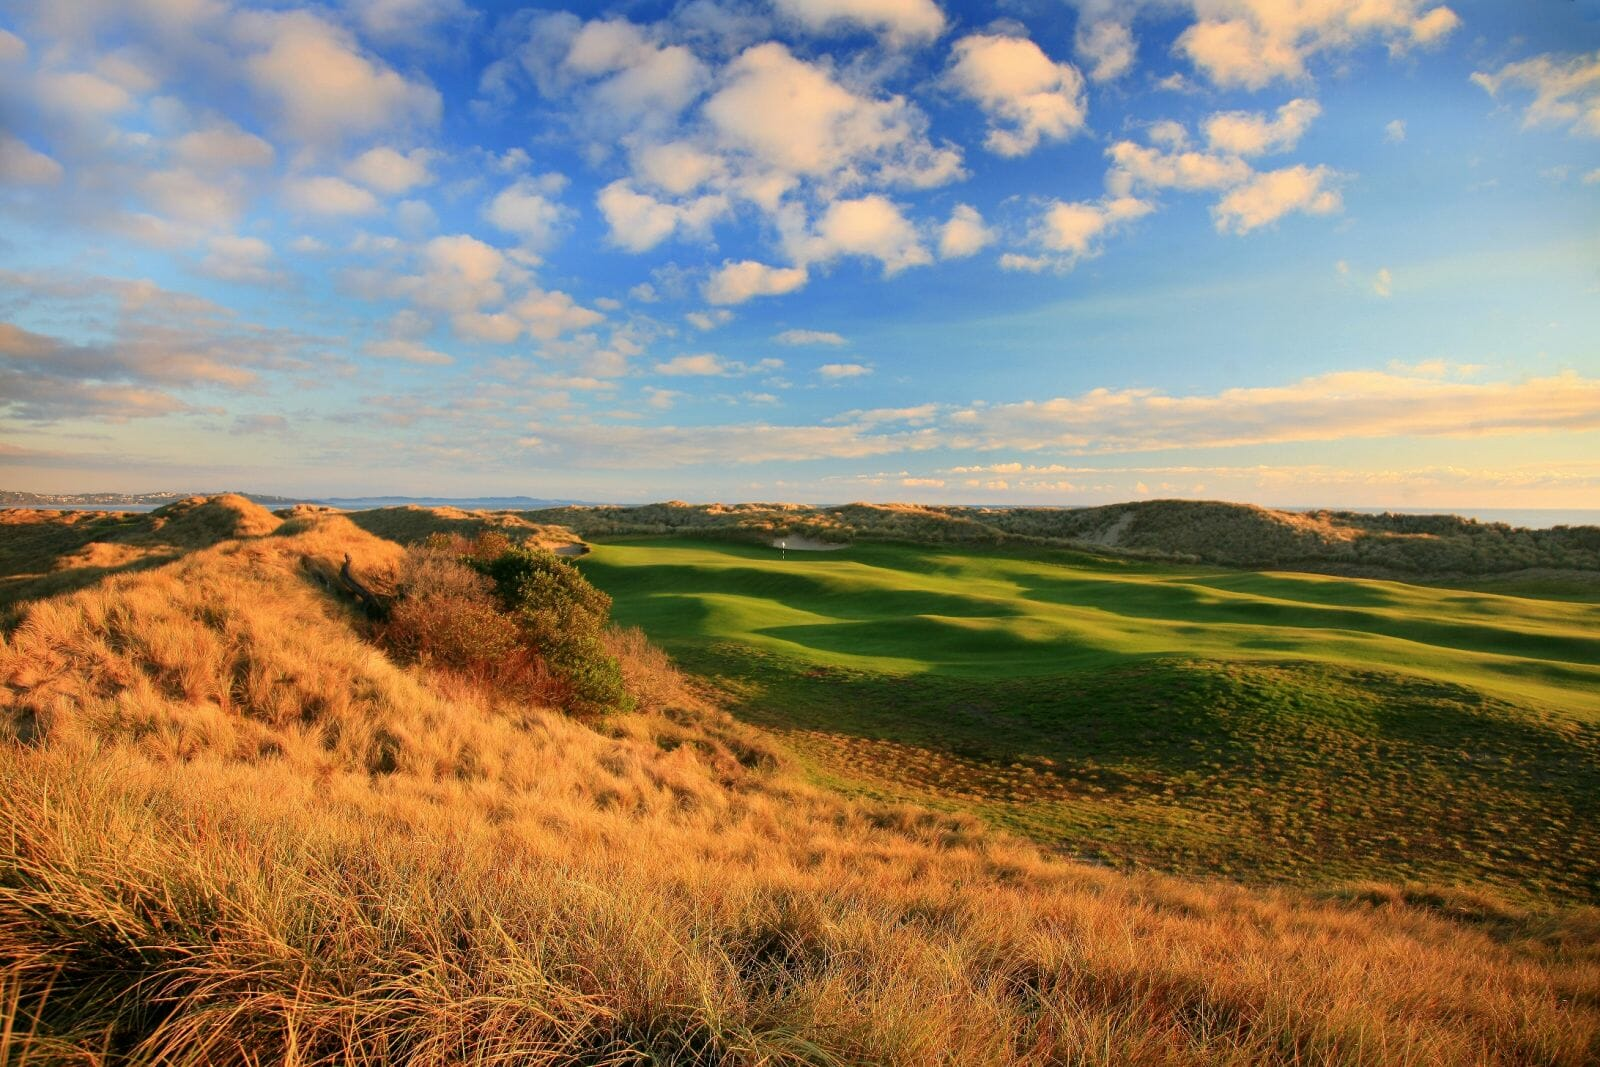 Dusk settles over the seventeenth fairway of The Dunes course